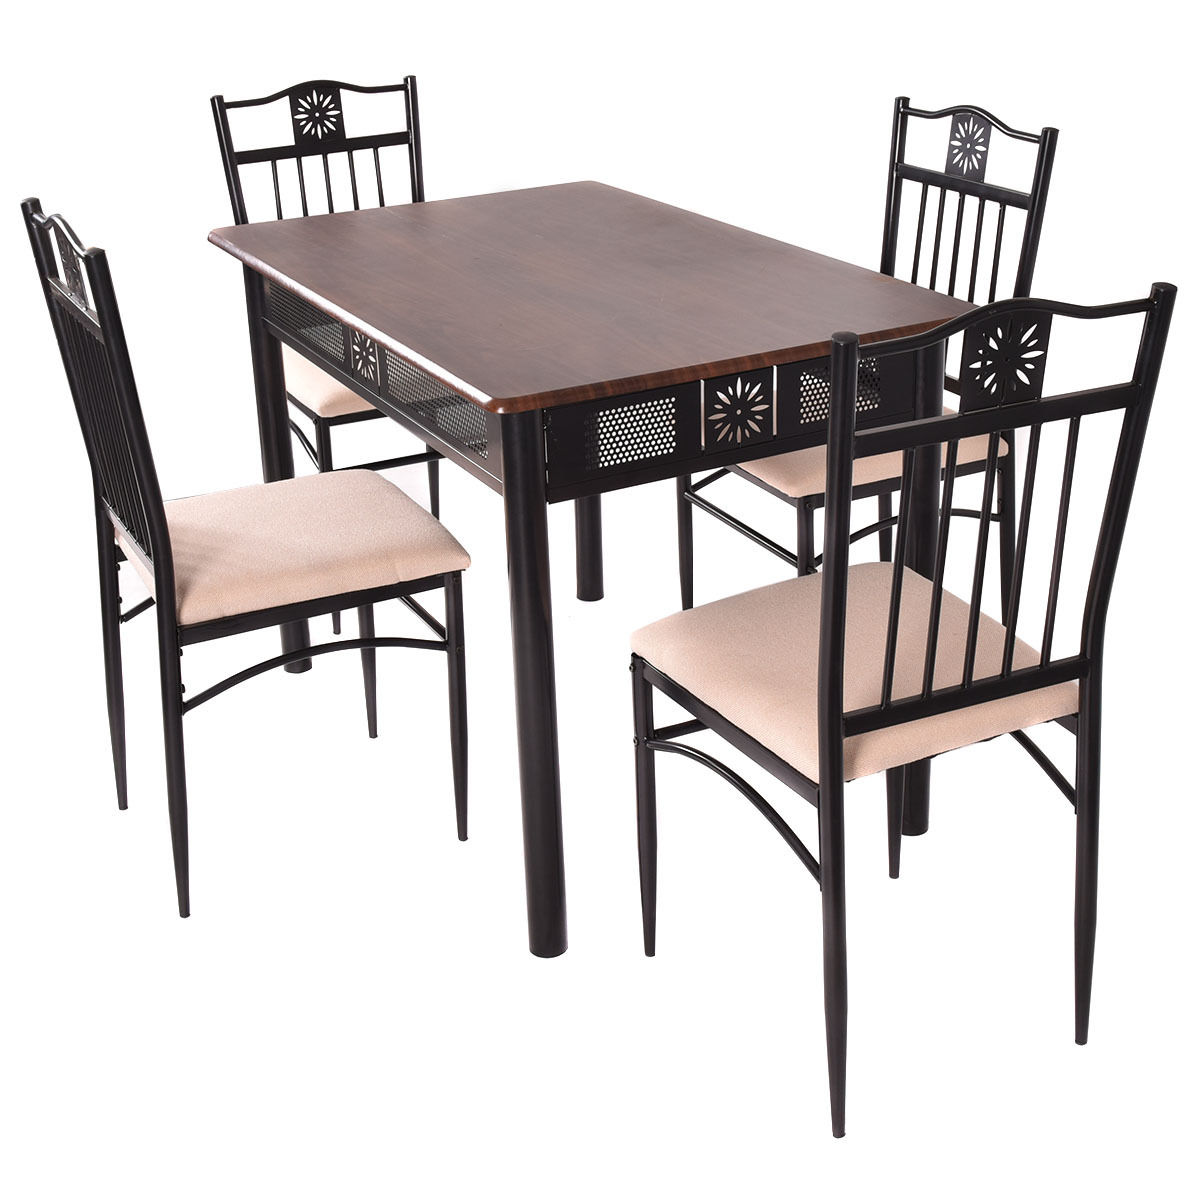 45 Wood Kitchen Tables And Chairs Sets Kitchen Chairs: Costway 5 Piece Dining Set Wood Metal Table And 4 Chairs